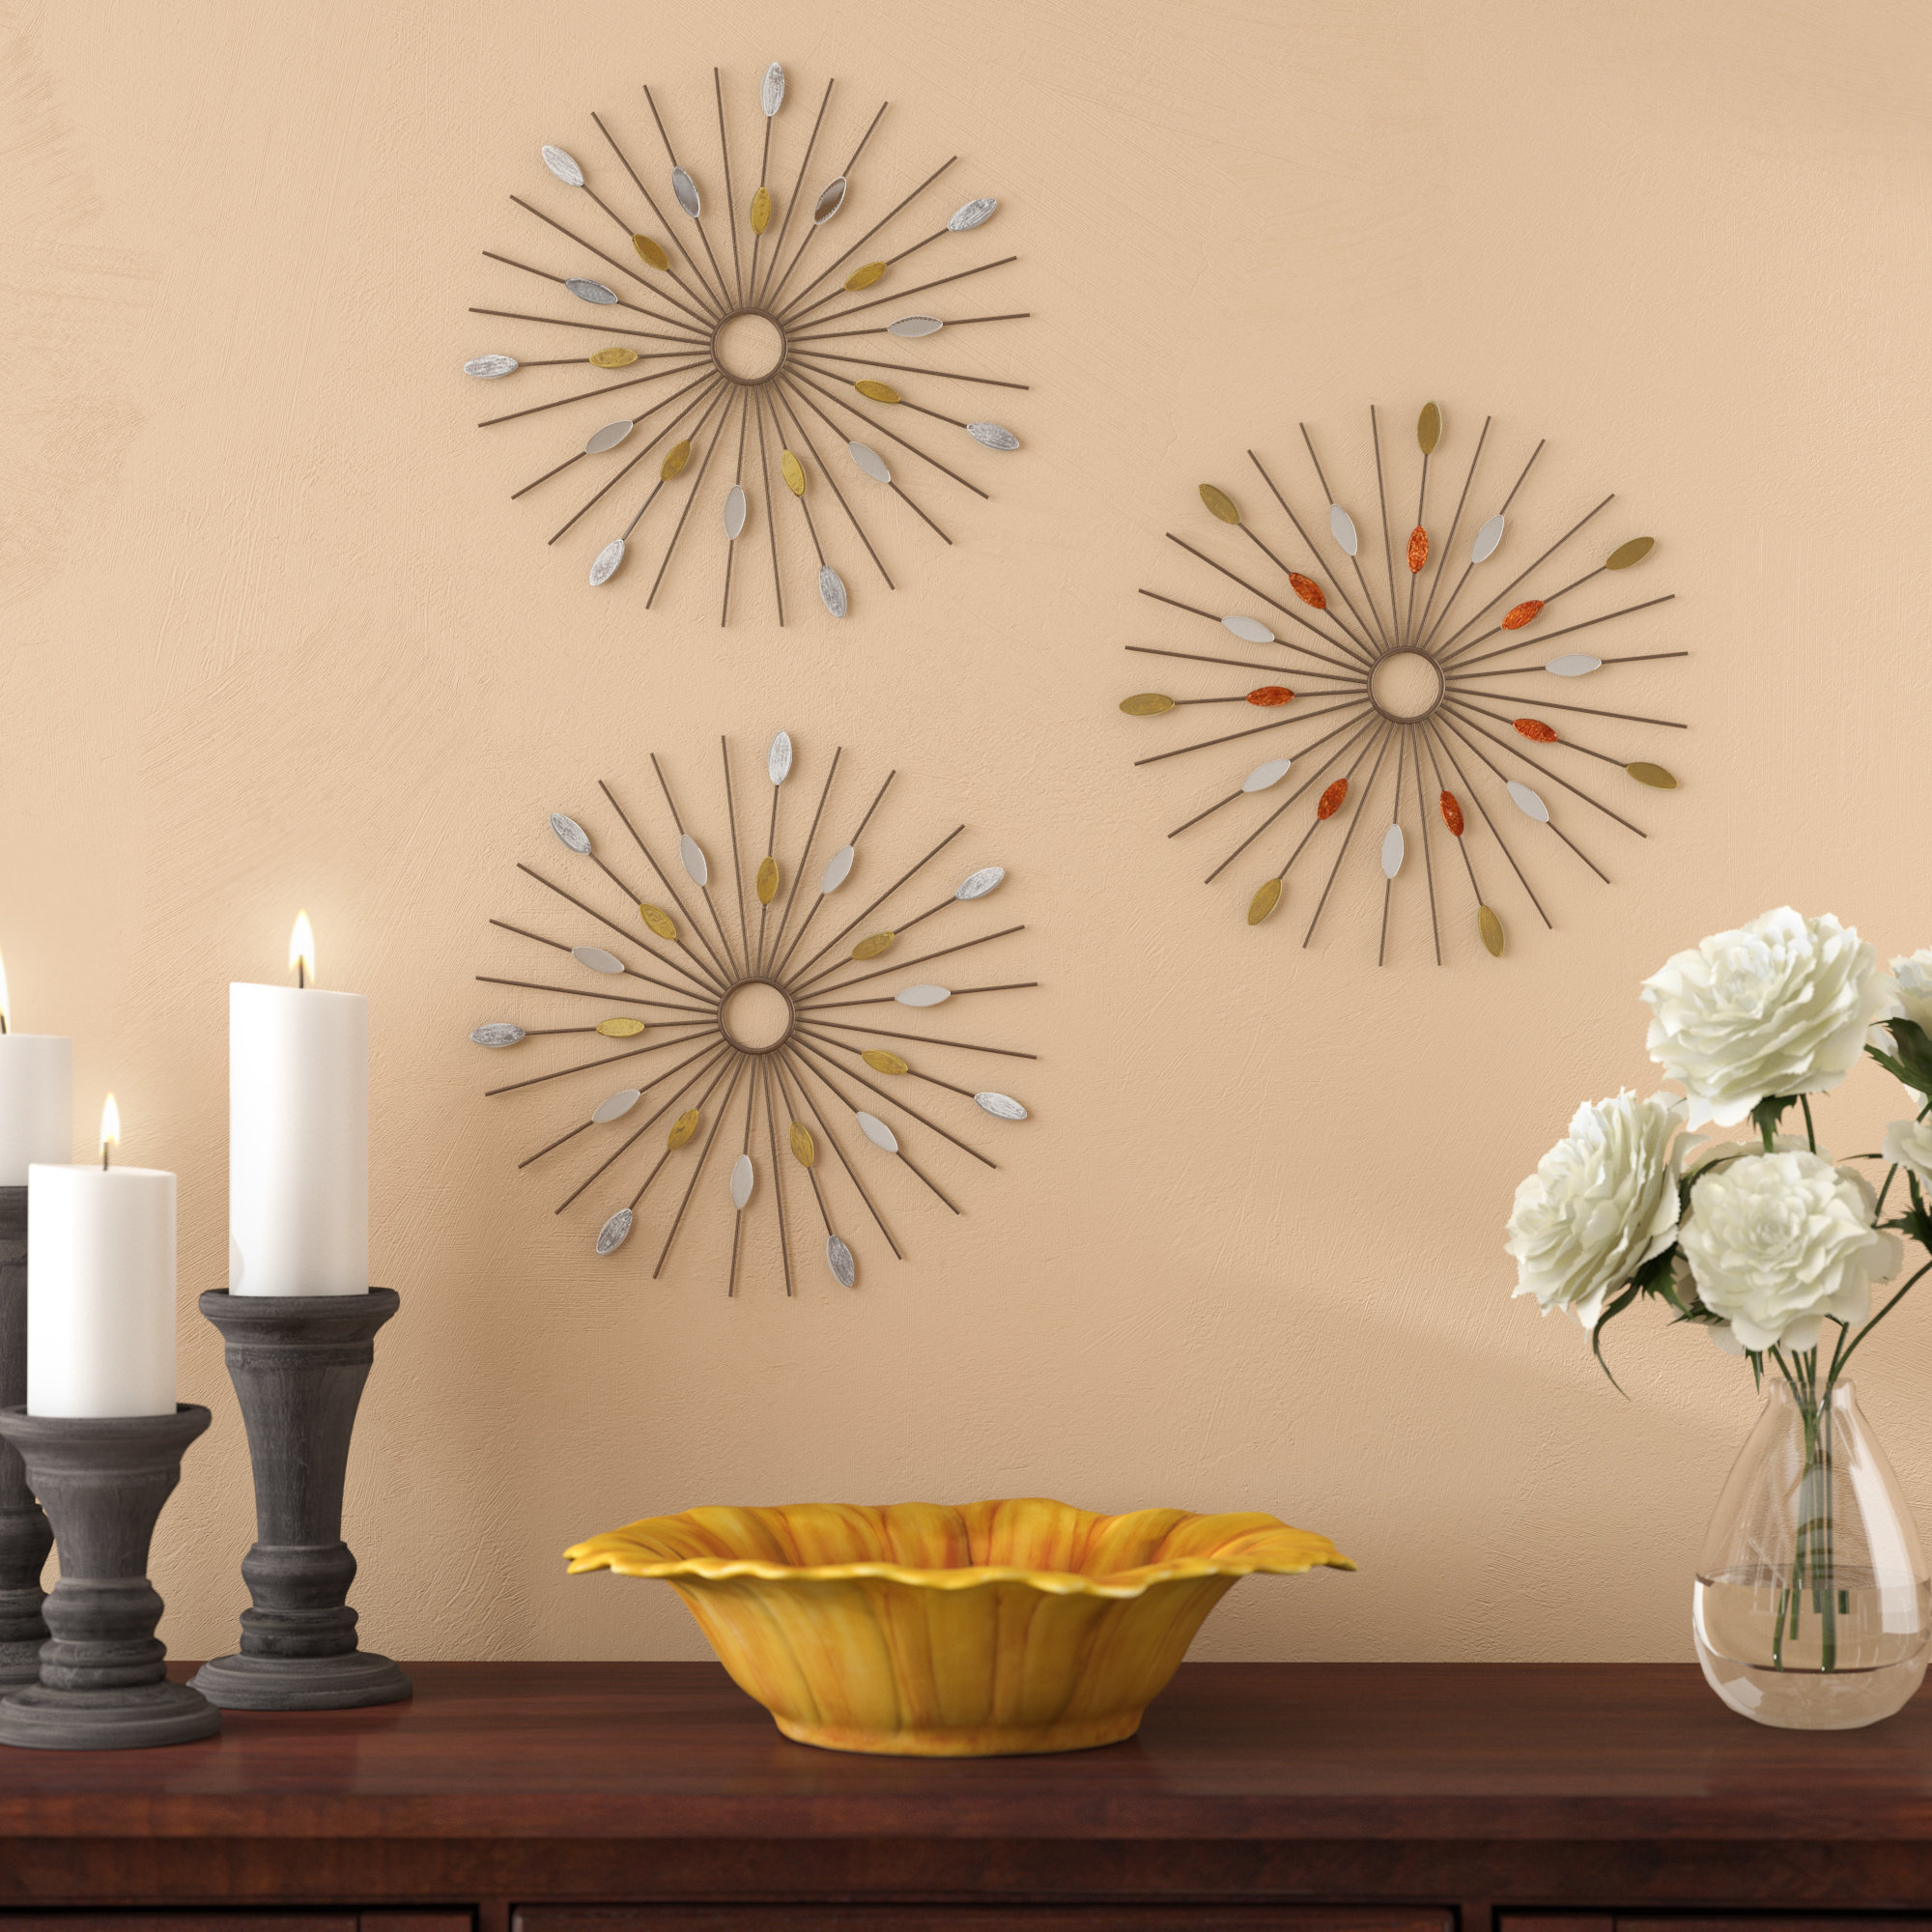 3 Piece Acrylic Burst Wall Decor Sets (Set Of 3) In Most Recent Wrought Studio 3 Piece Wall Décor Set & Reviews (View 4 of 20)